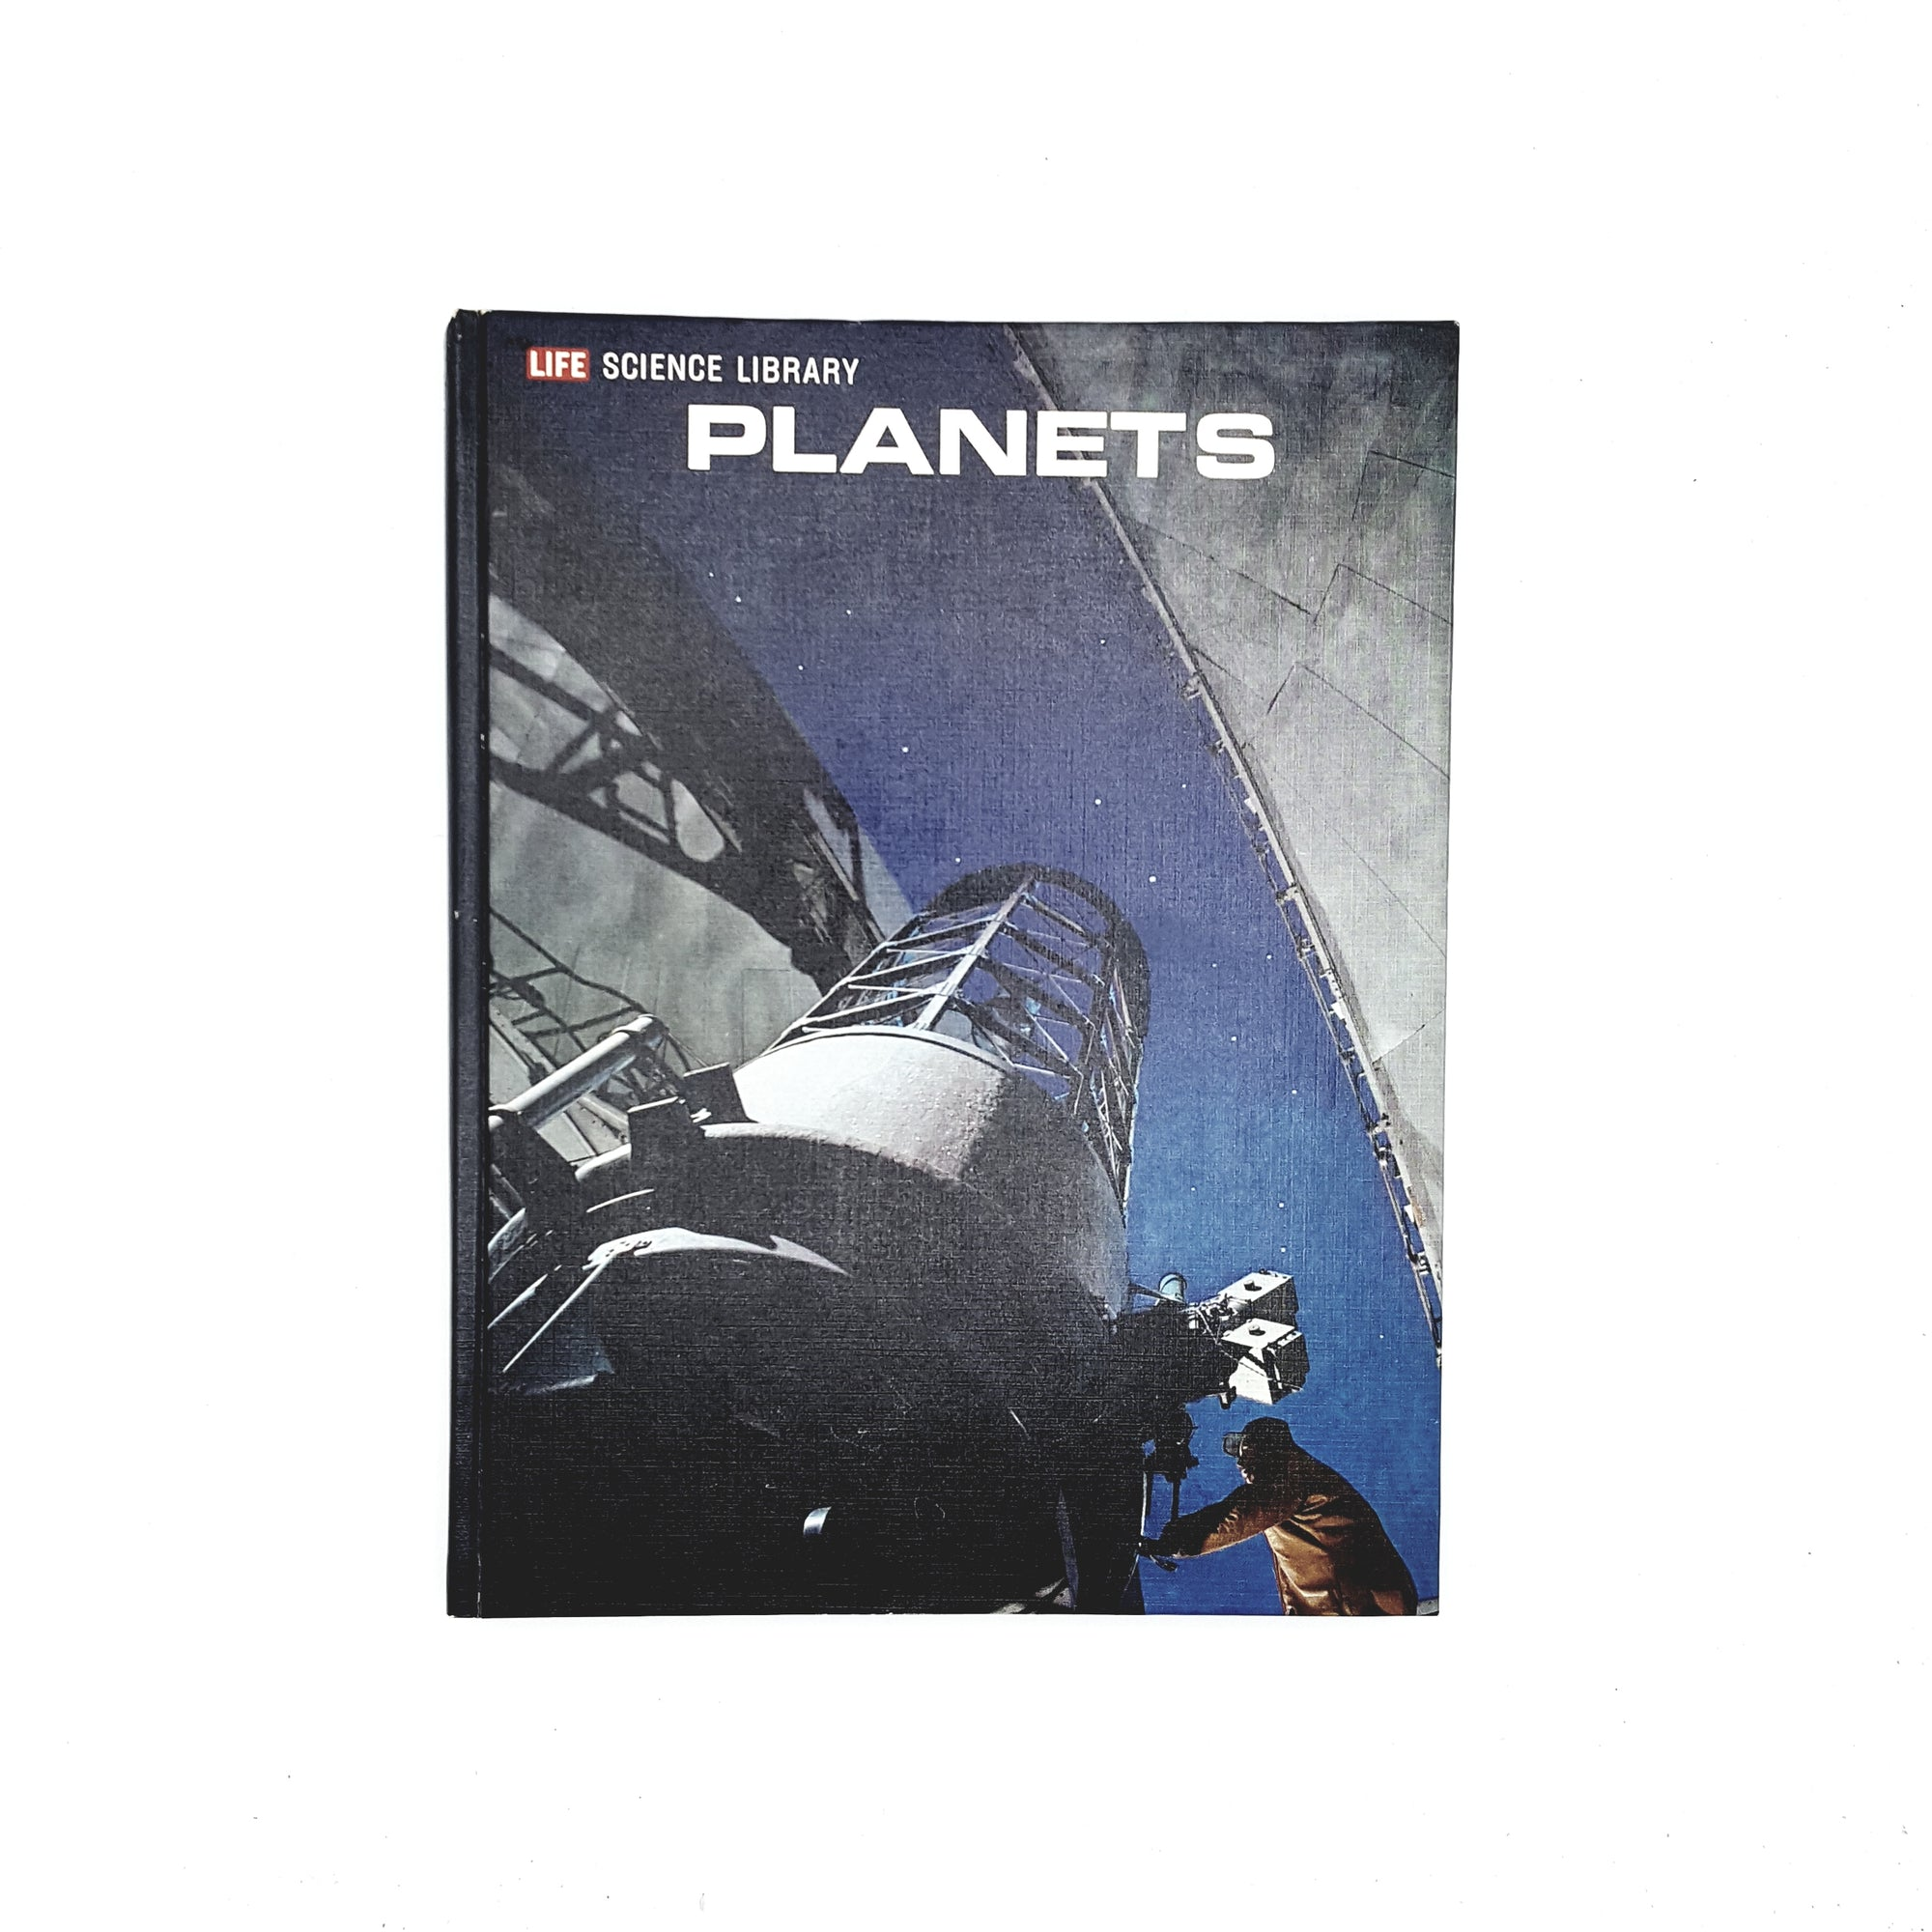 Life Science Library: Planets 1972